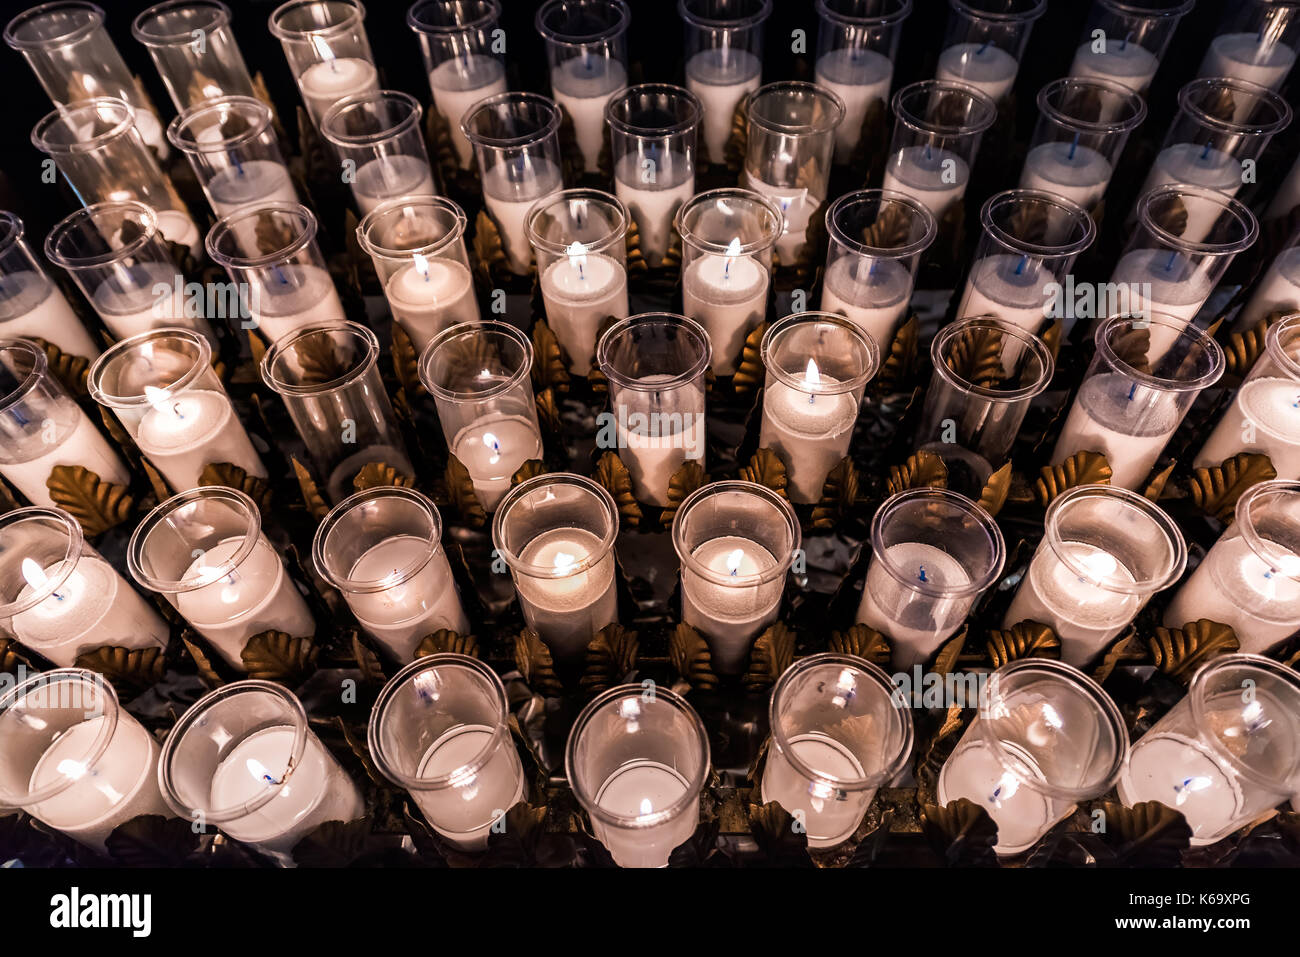 Closeup pattern of many white religious votive candles with yellow flame in church or cathedral - Stock Image